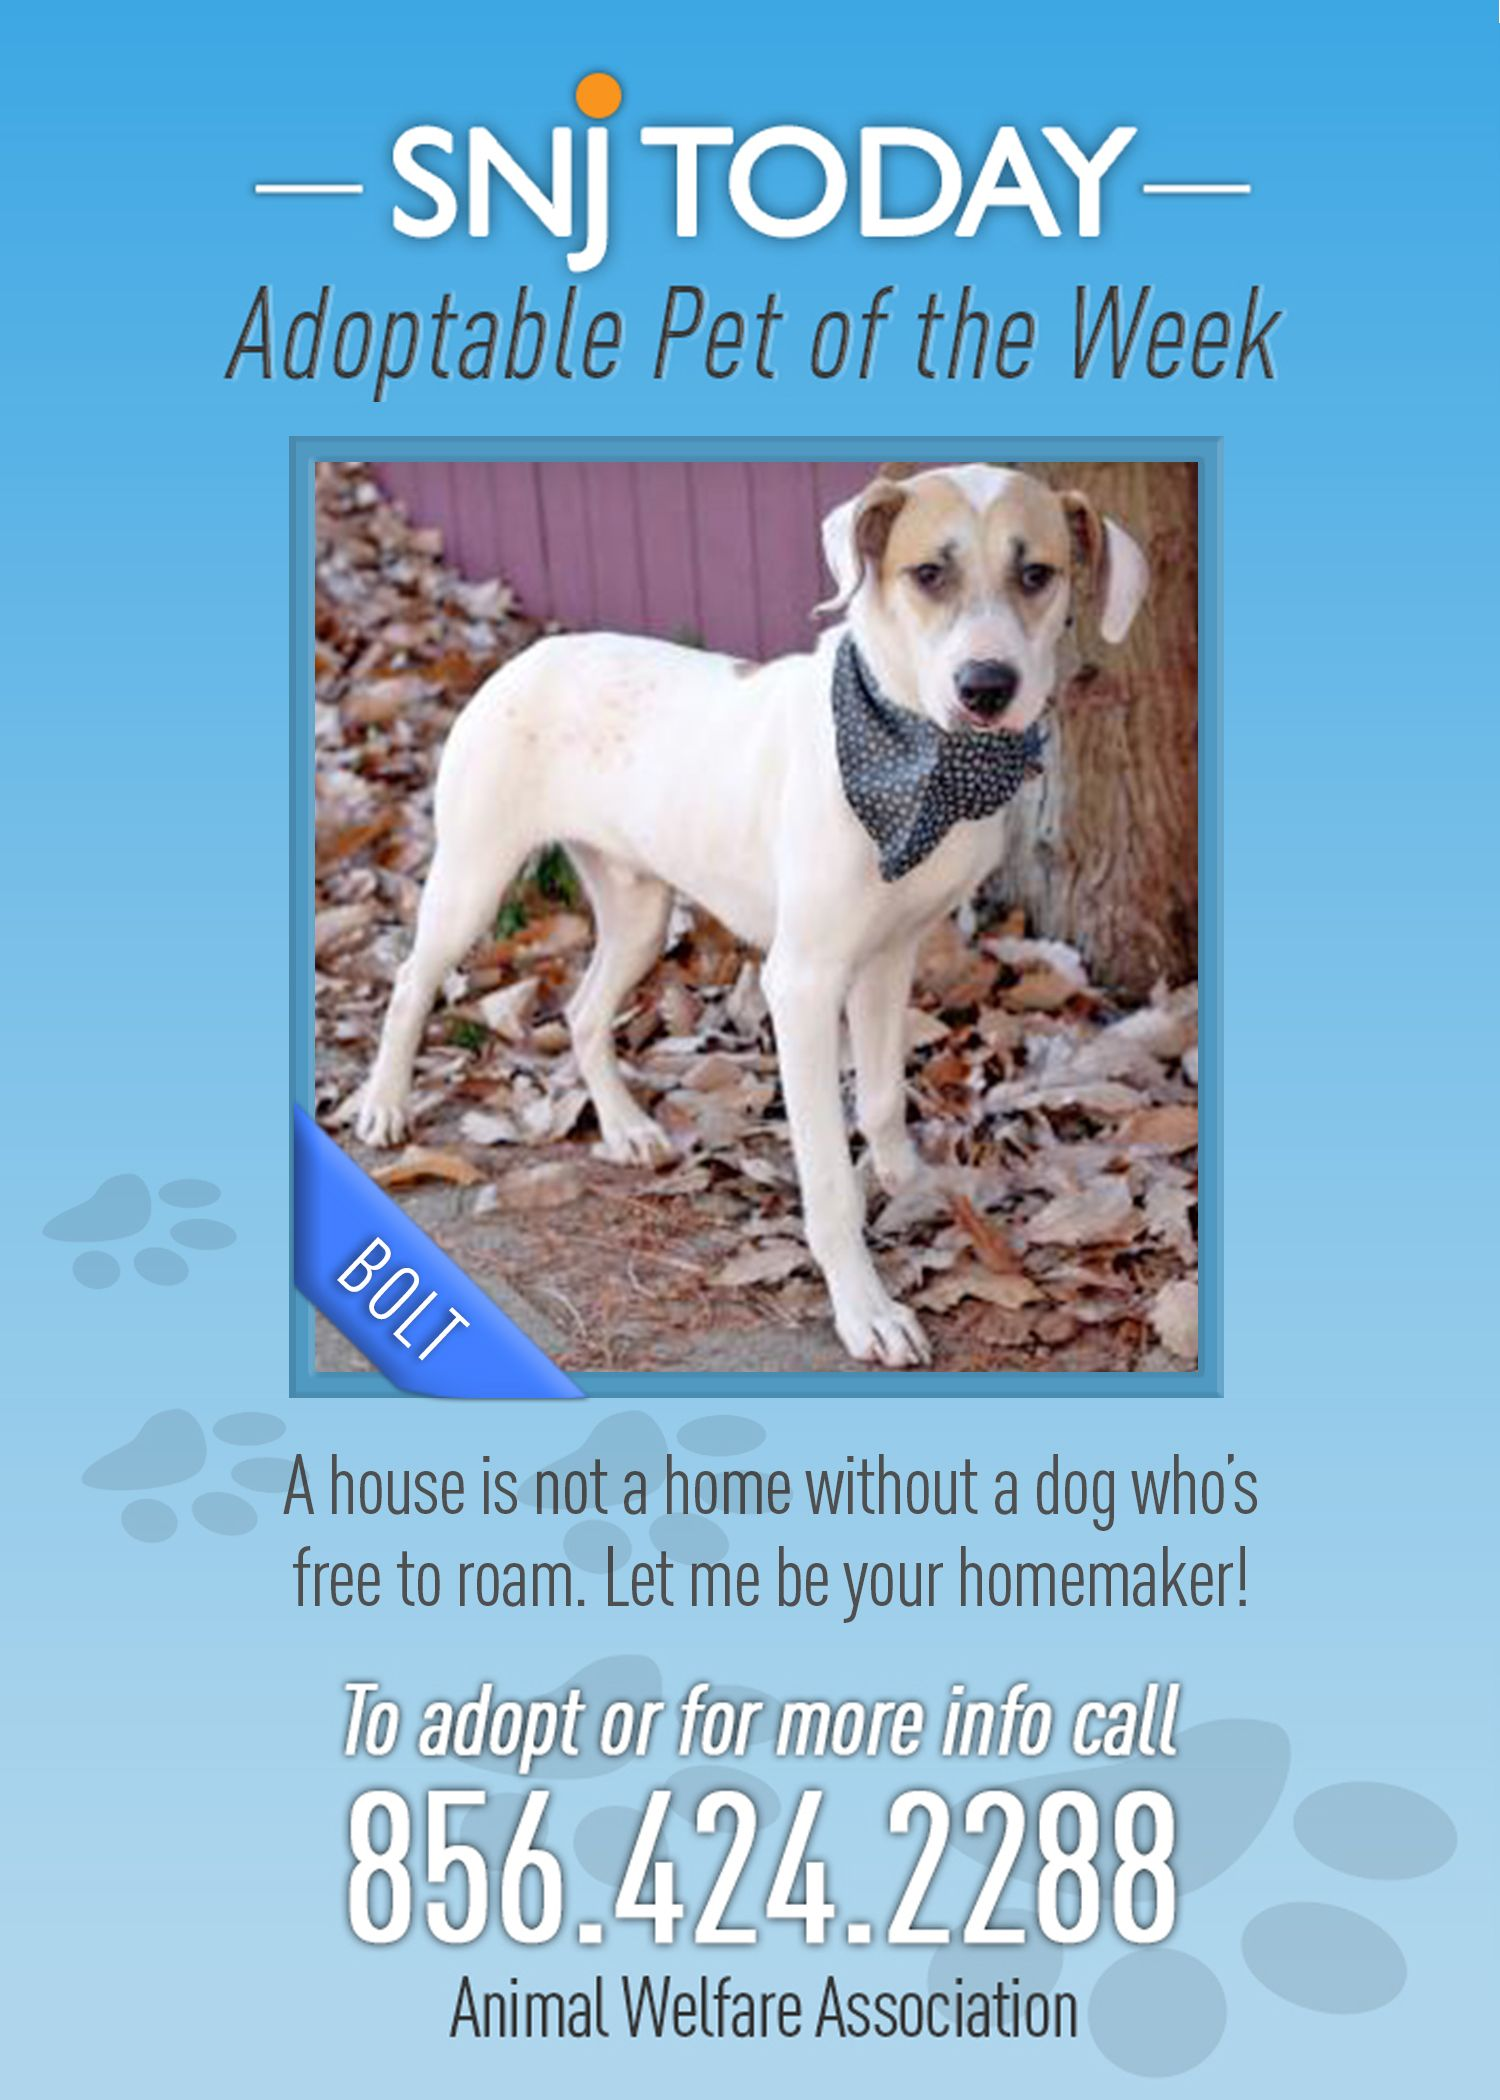 Bolt Is Snj S Adoptable Pet Of The Week He S A One Year Old Labrador Retriever Mix Who Loves To Be With Children This L No Kill Animal Shelter Animals Animal Welfare